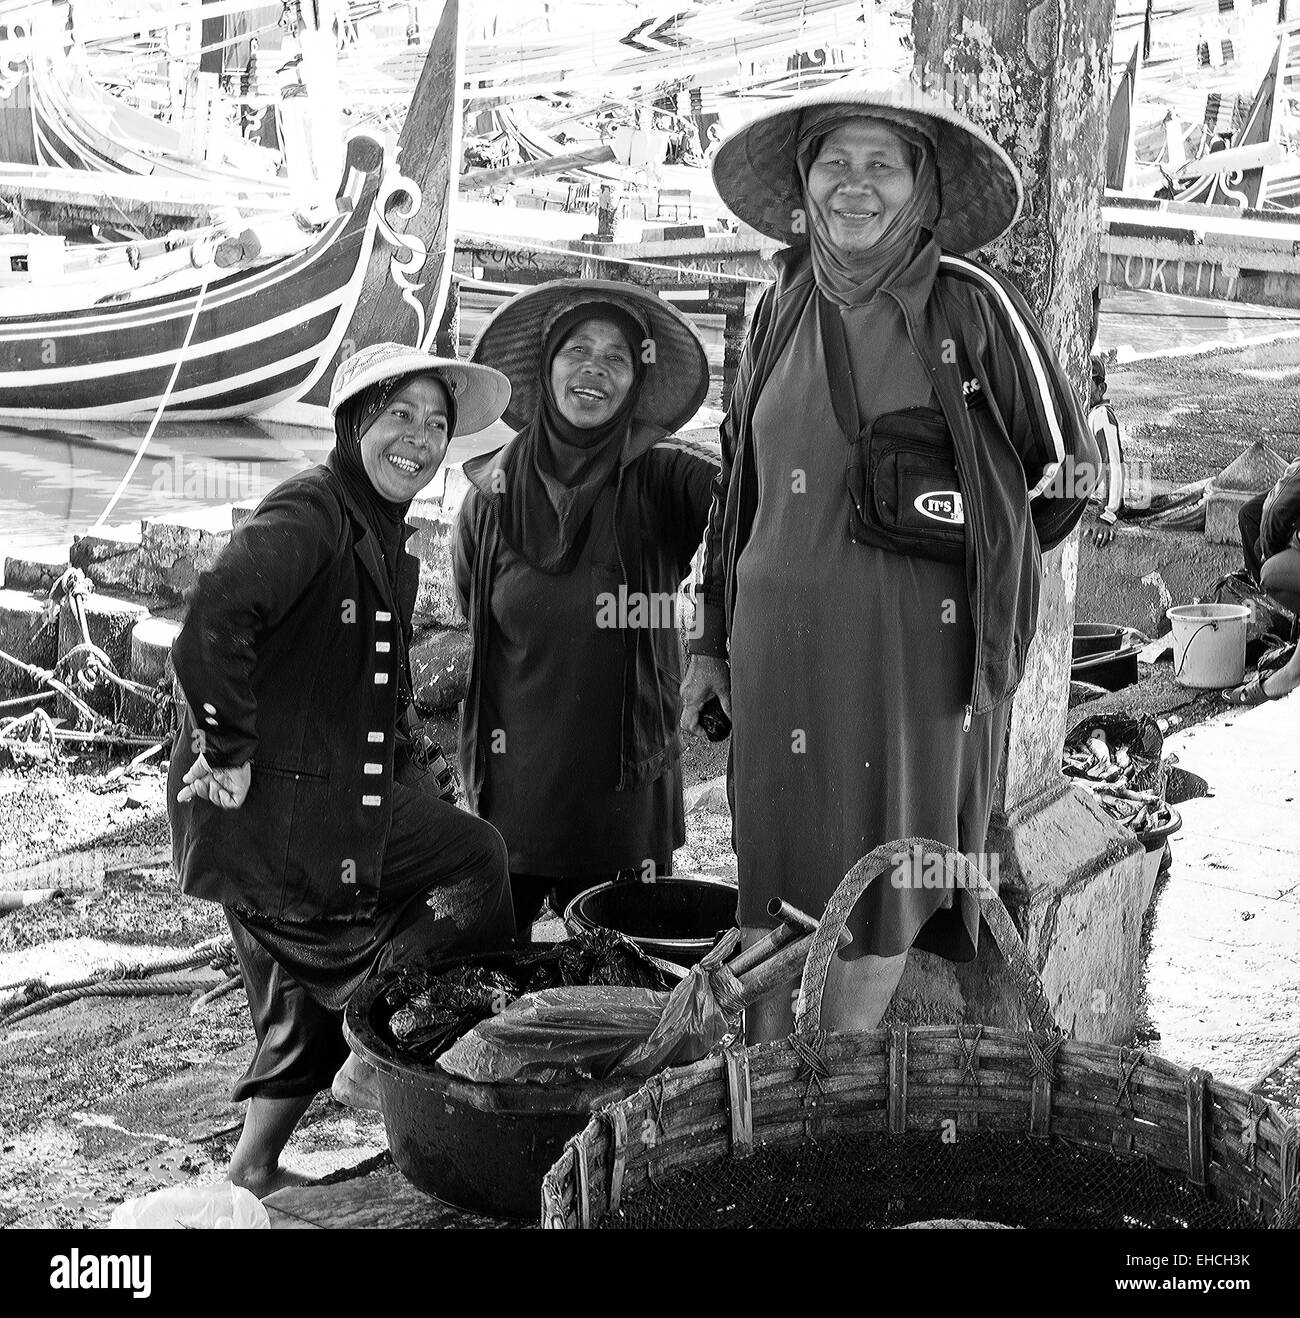 Fish wives at the market - Stock Image